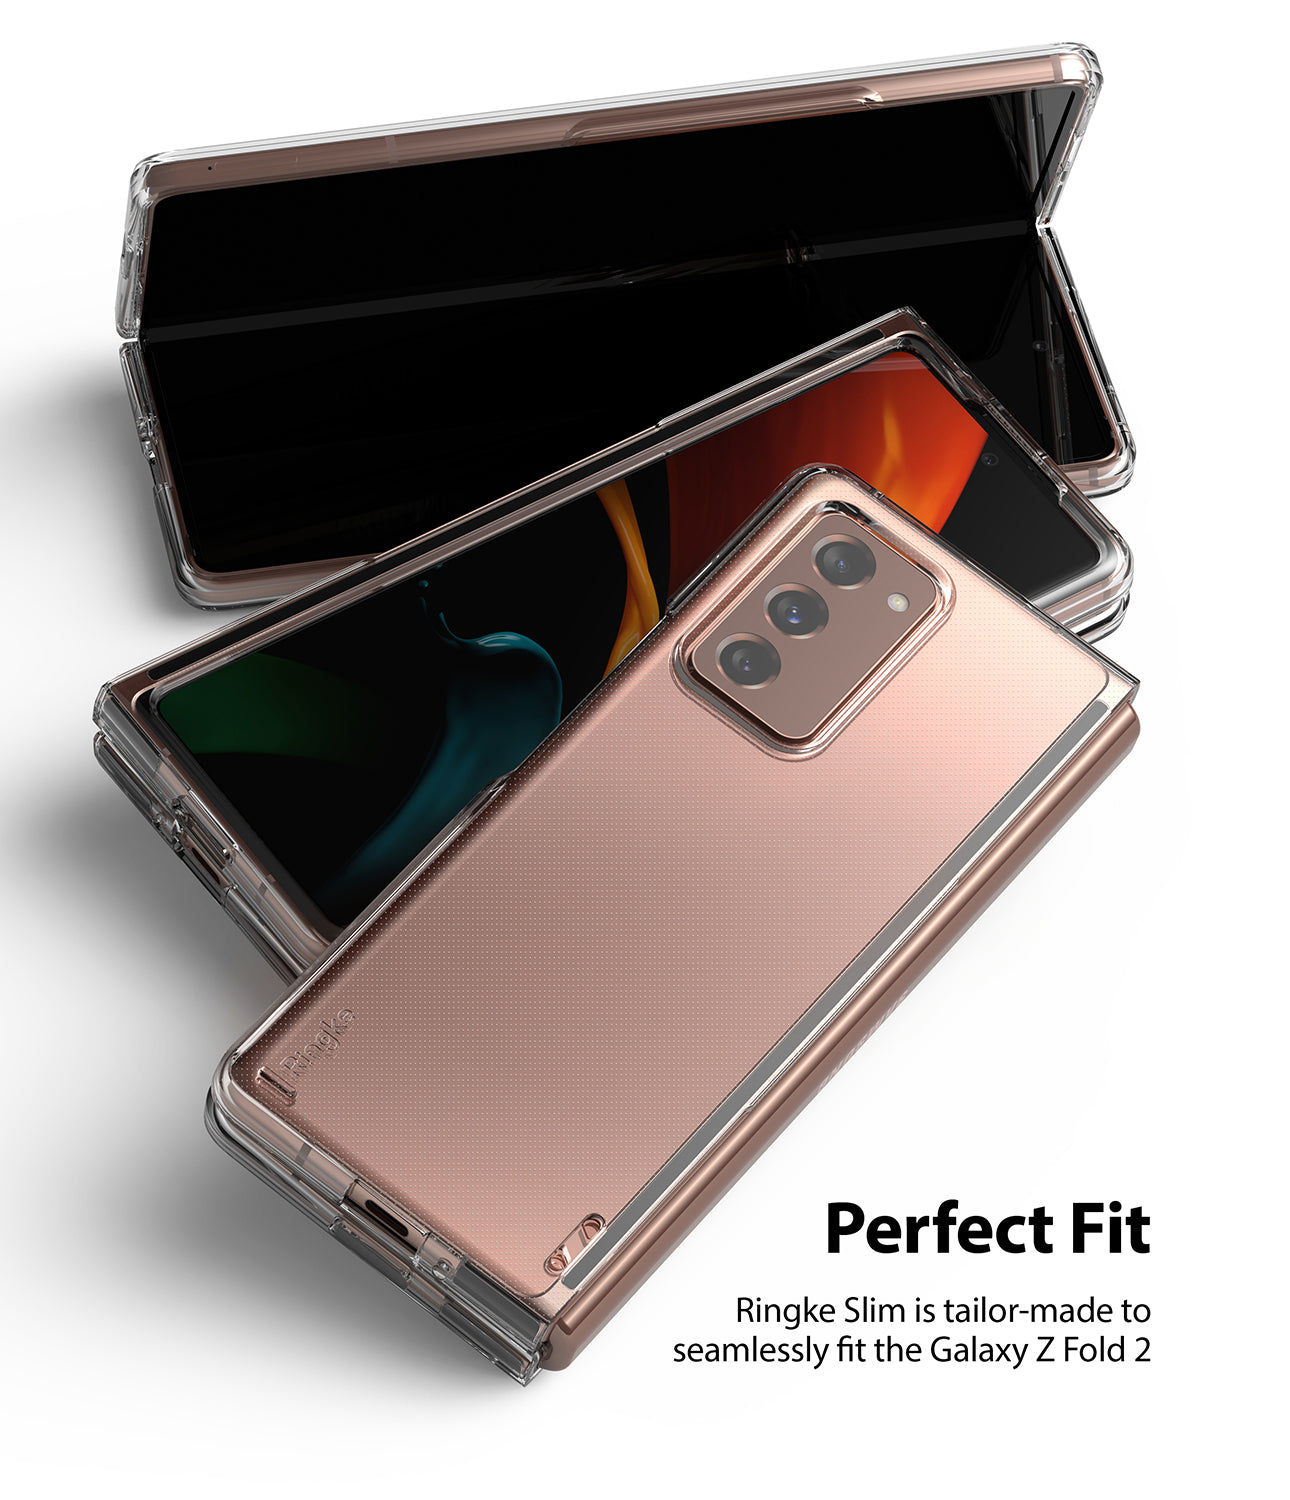 tailor made to fit seamlessly fit the galaxy z fold 2